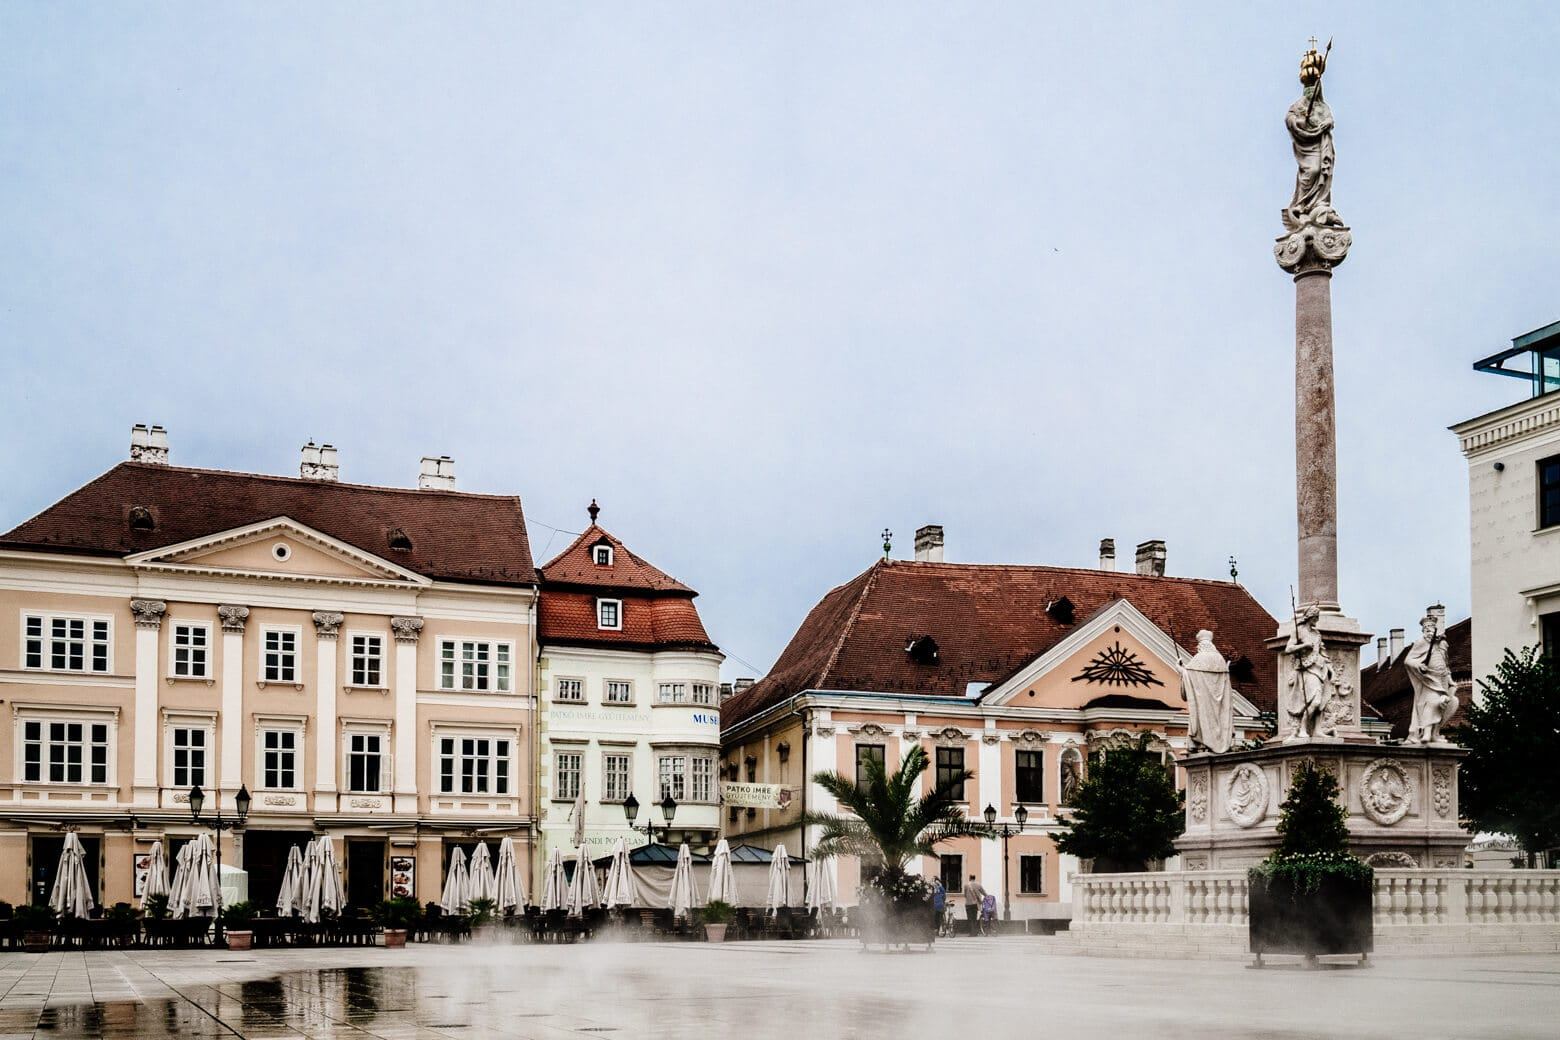 Szechenyi Square and the Column of St Mary